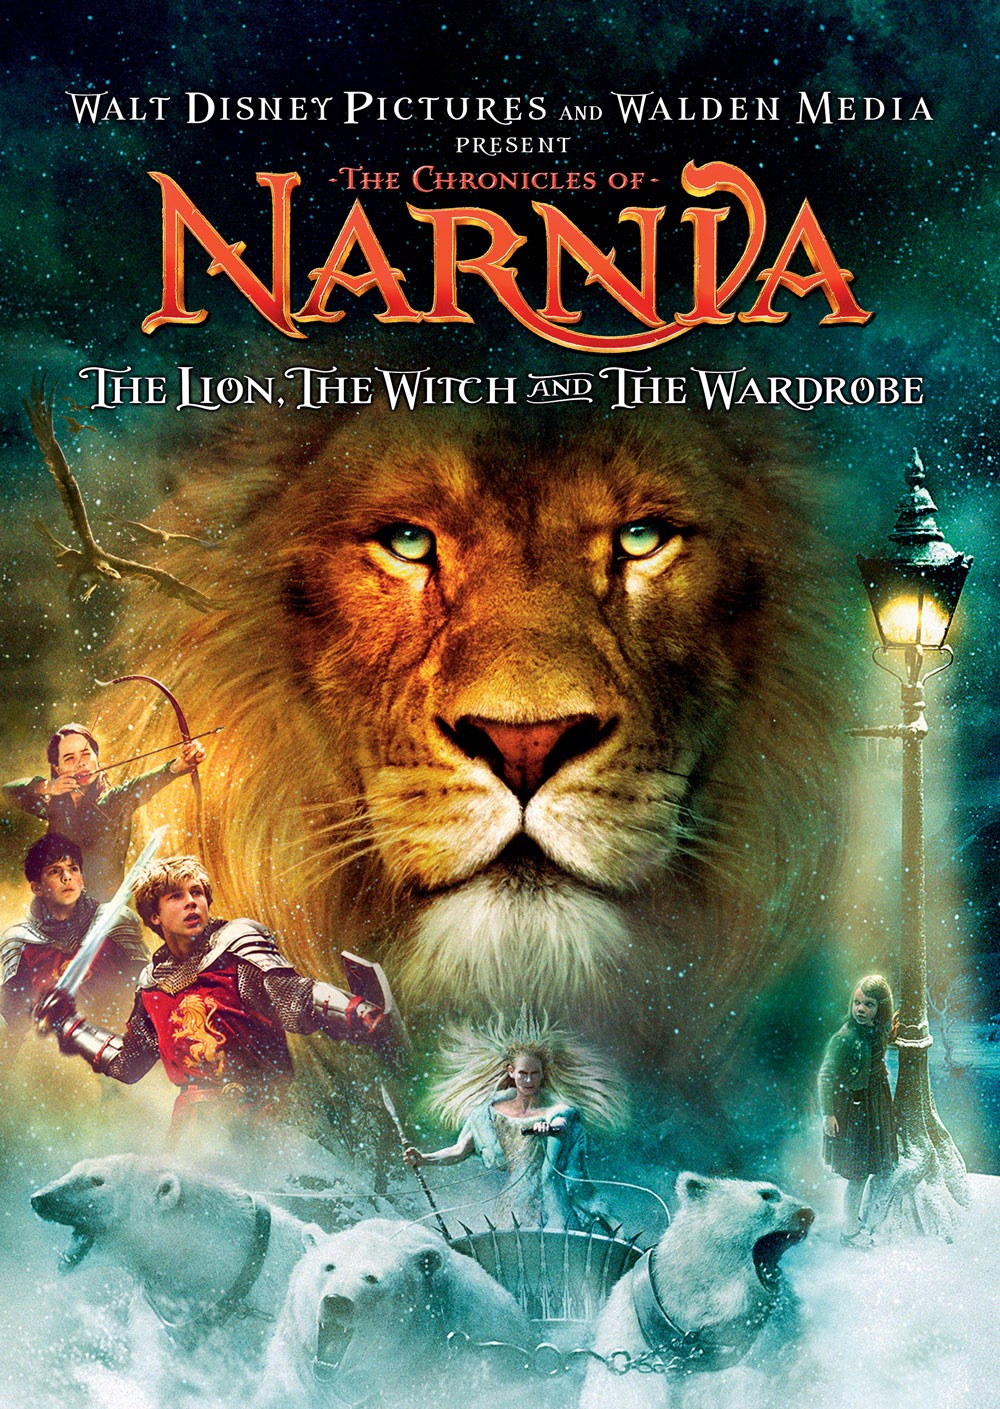 Artifact Analysis Christianity In The Lion The Witch And The Wardrobe By Lola Soji Medium On earth, lions are the second largest cats in the world, second only to tigers, so presumably it is the same with narnian lions. the lion the witch and the wardrobe